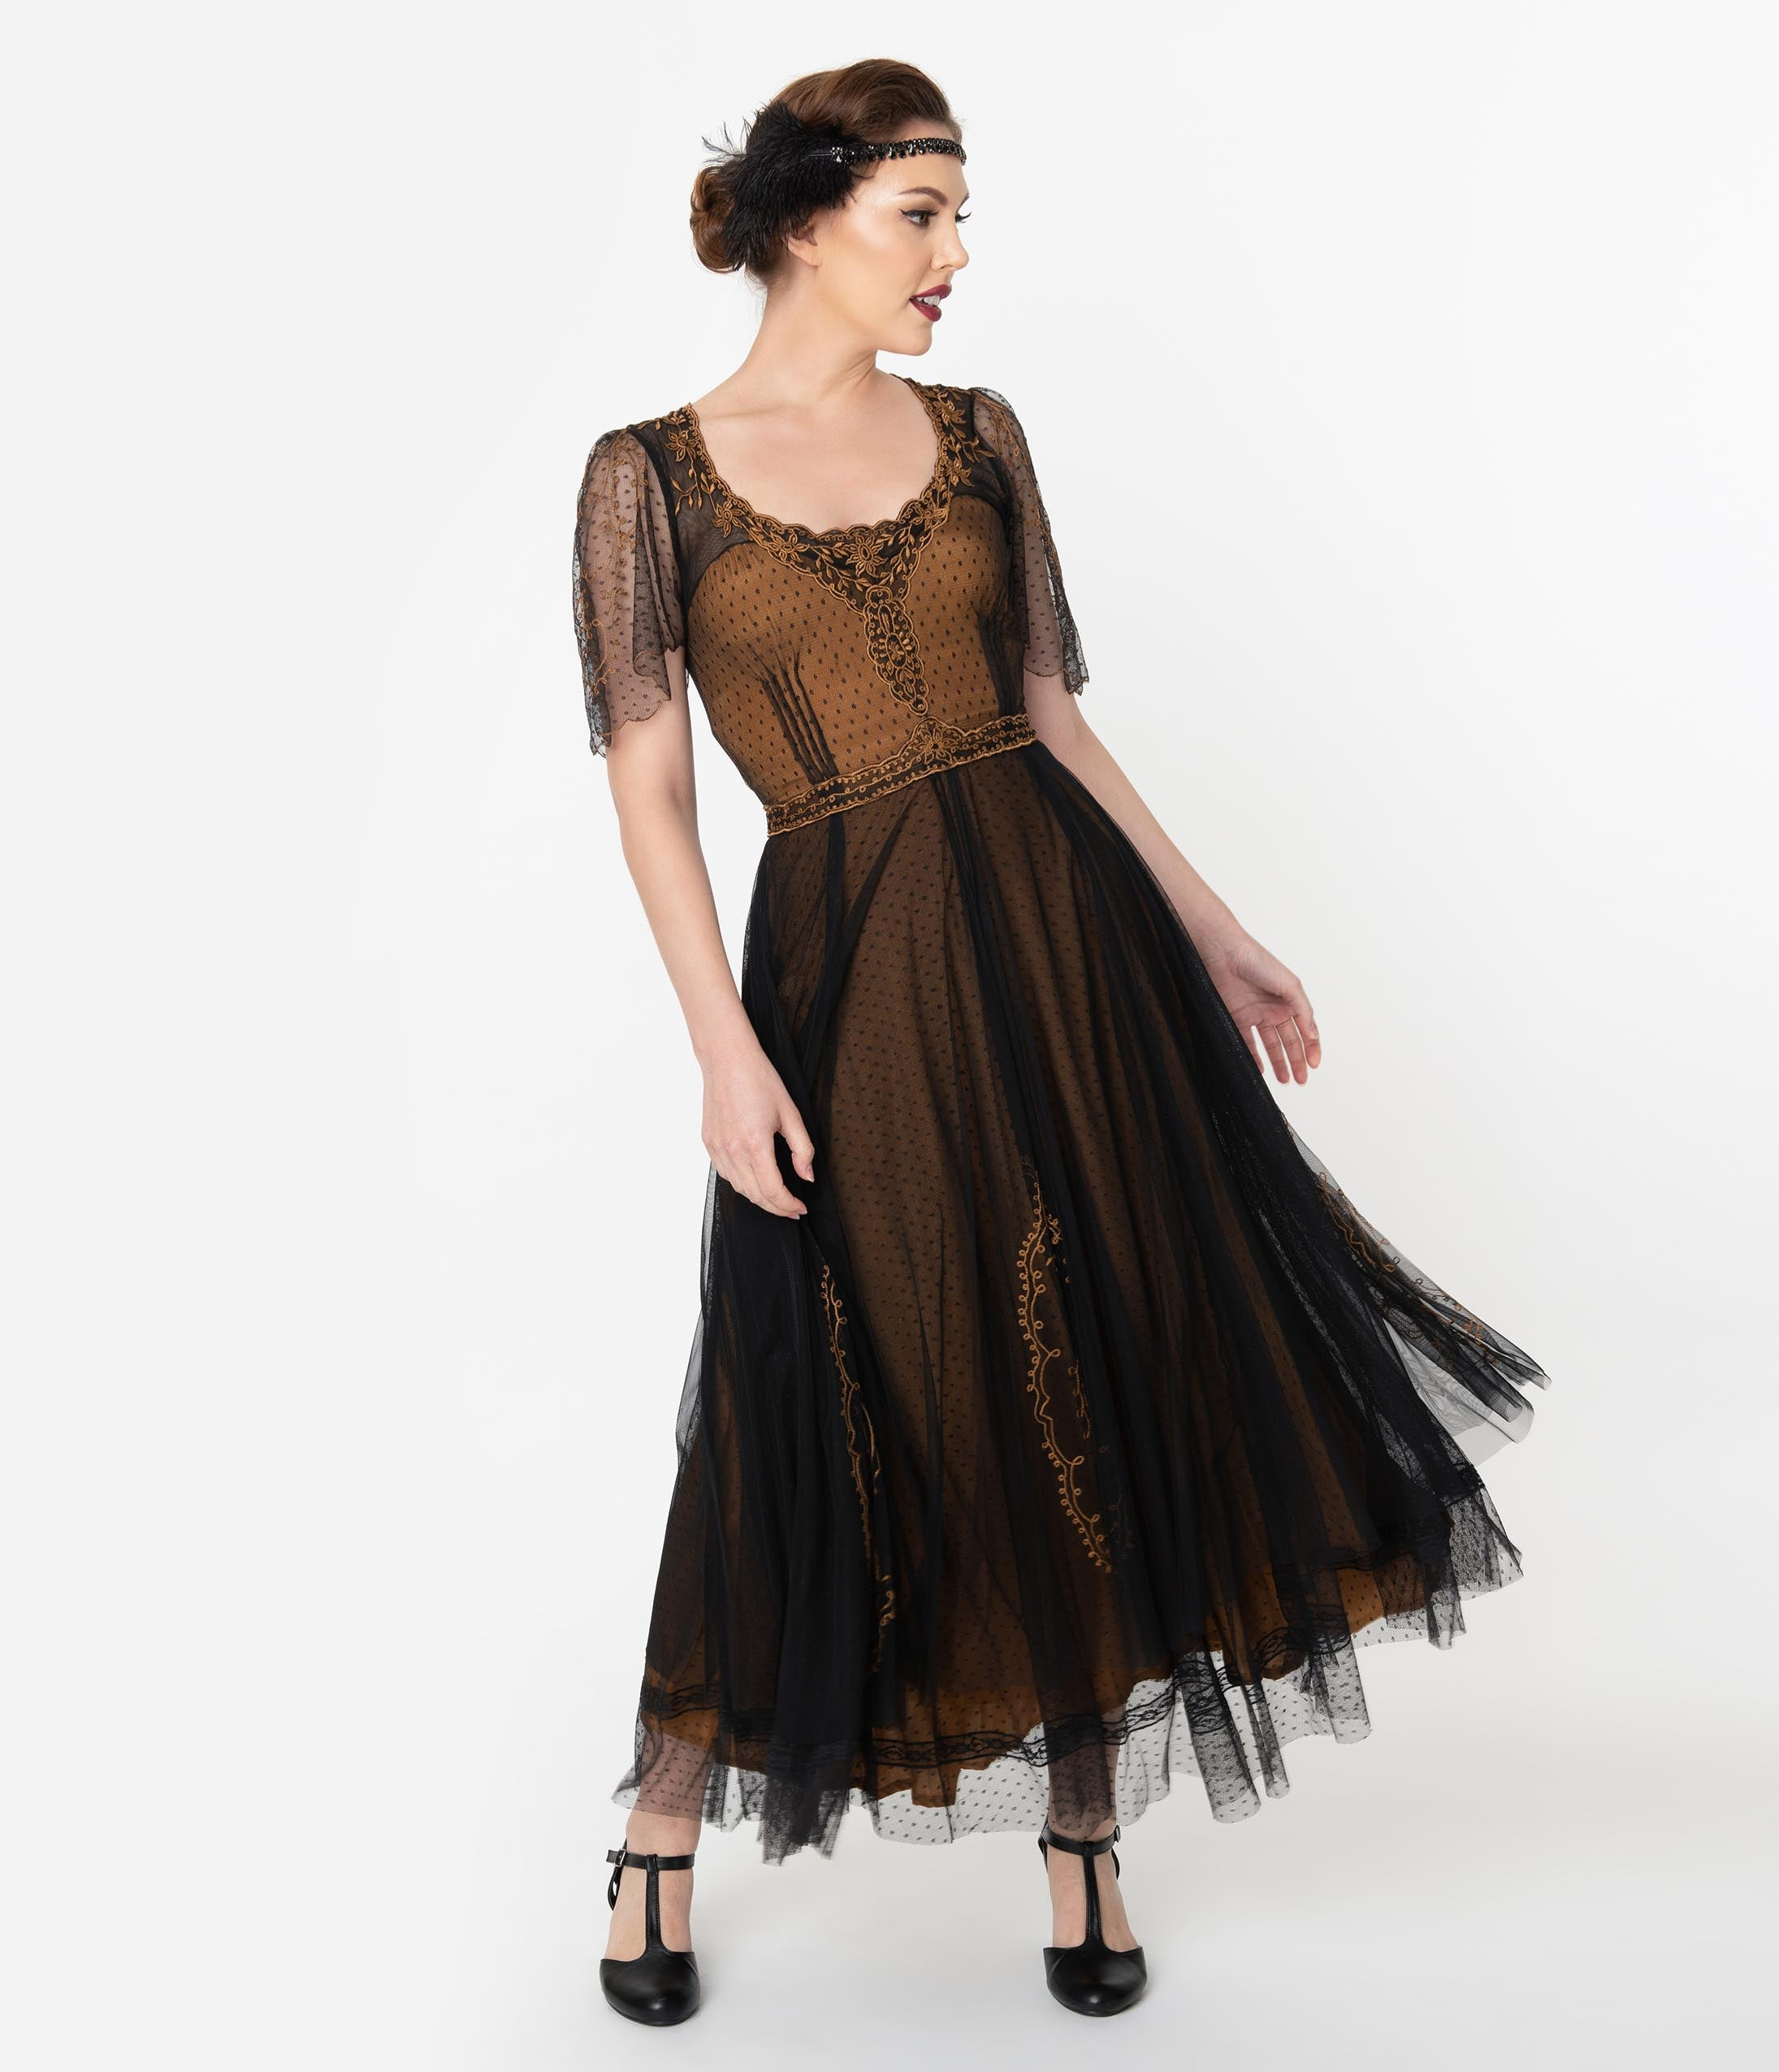 Best 1920s Prom Dresses – Great Gatsby Style Gowns Vintage Style Black  Gold Embroidered Mesh Edwardian Gown $299.00 AT vintagedancer.com